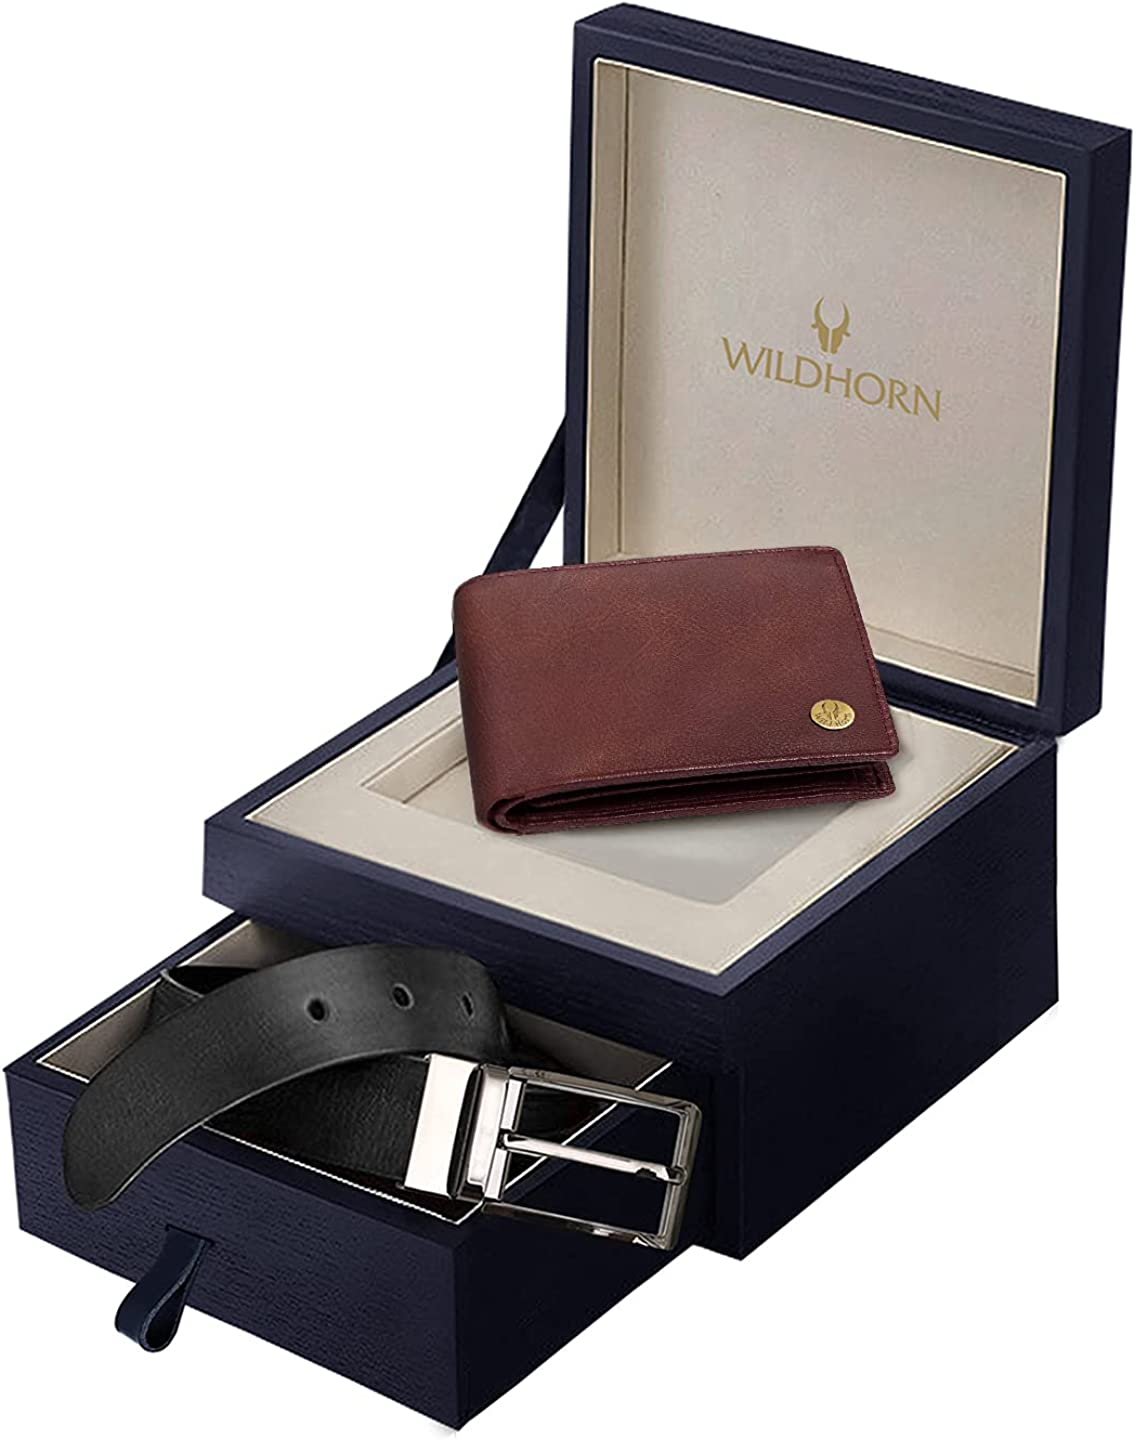 trust WildHorn RFID Protected Genuine Wallet for Men Animer and price revision Leather